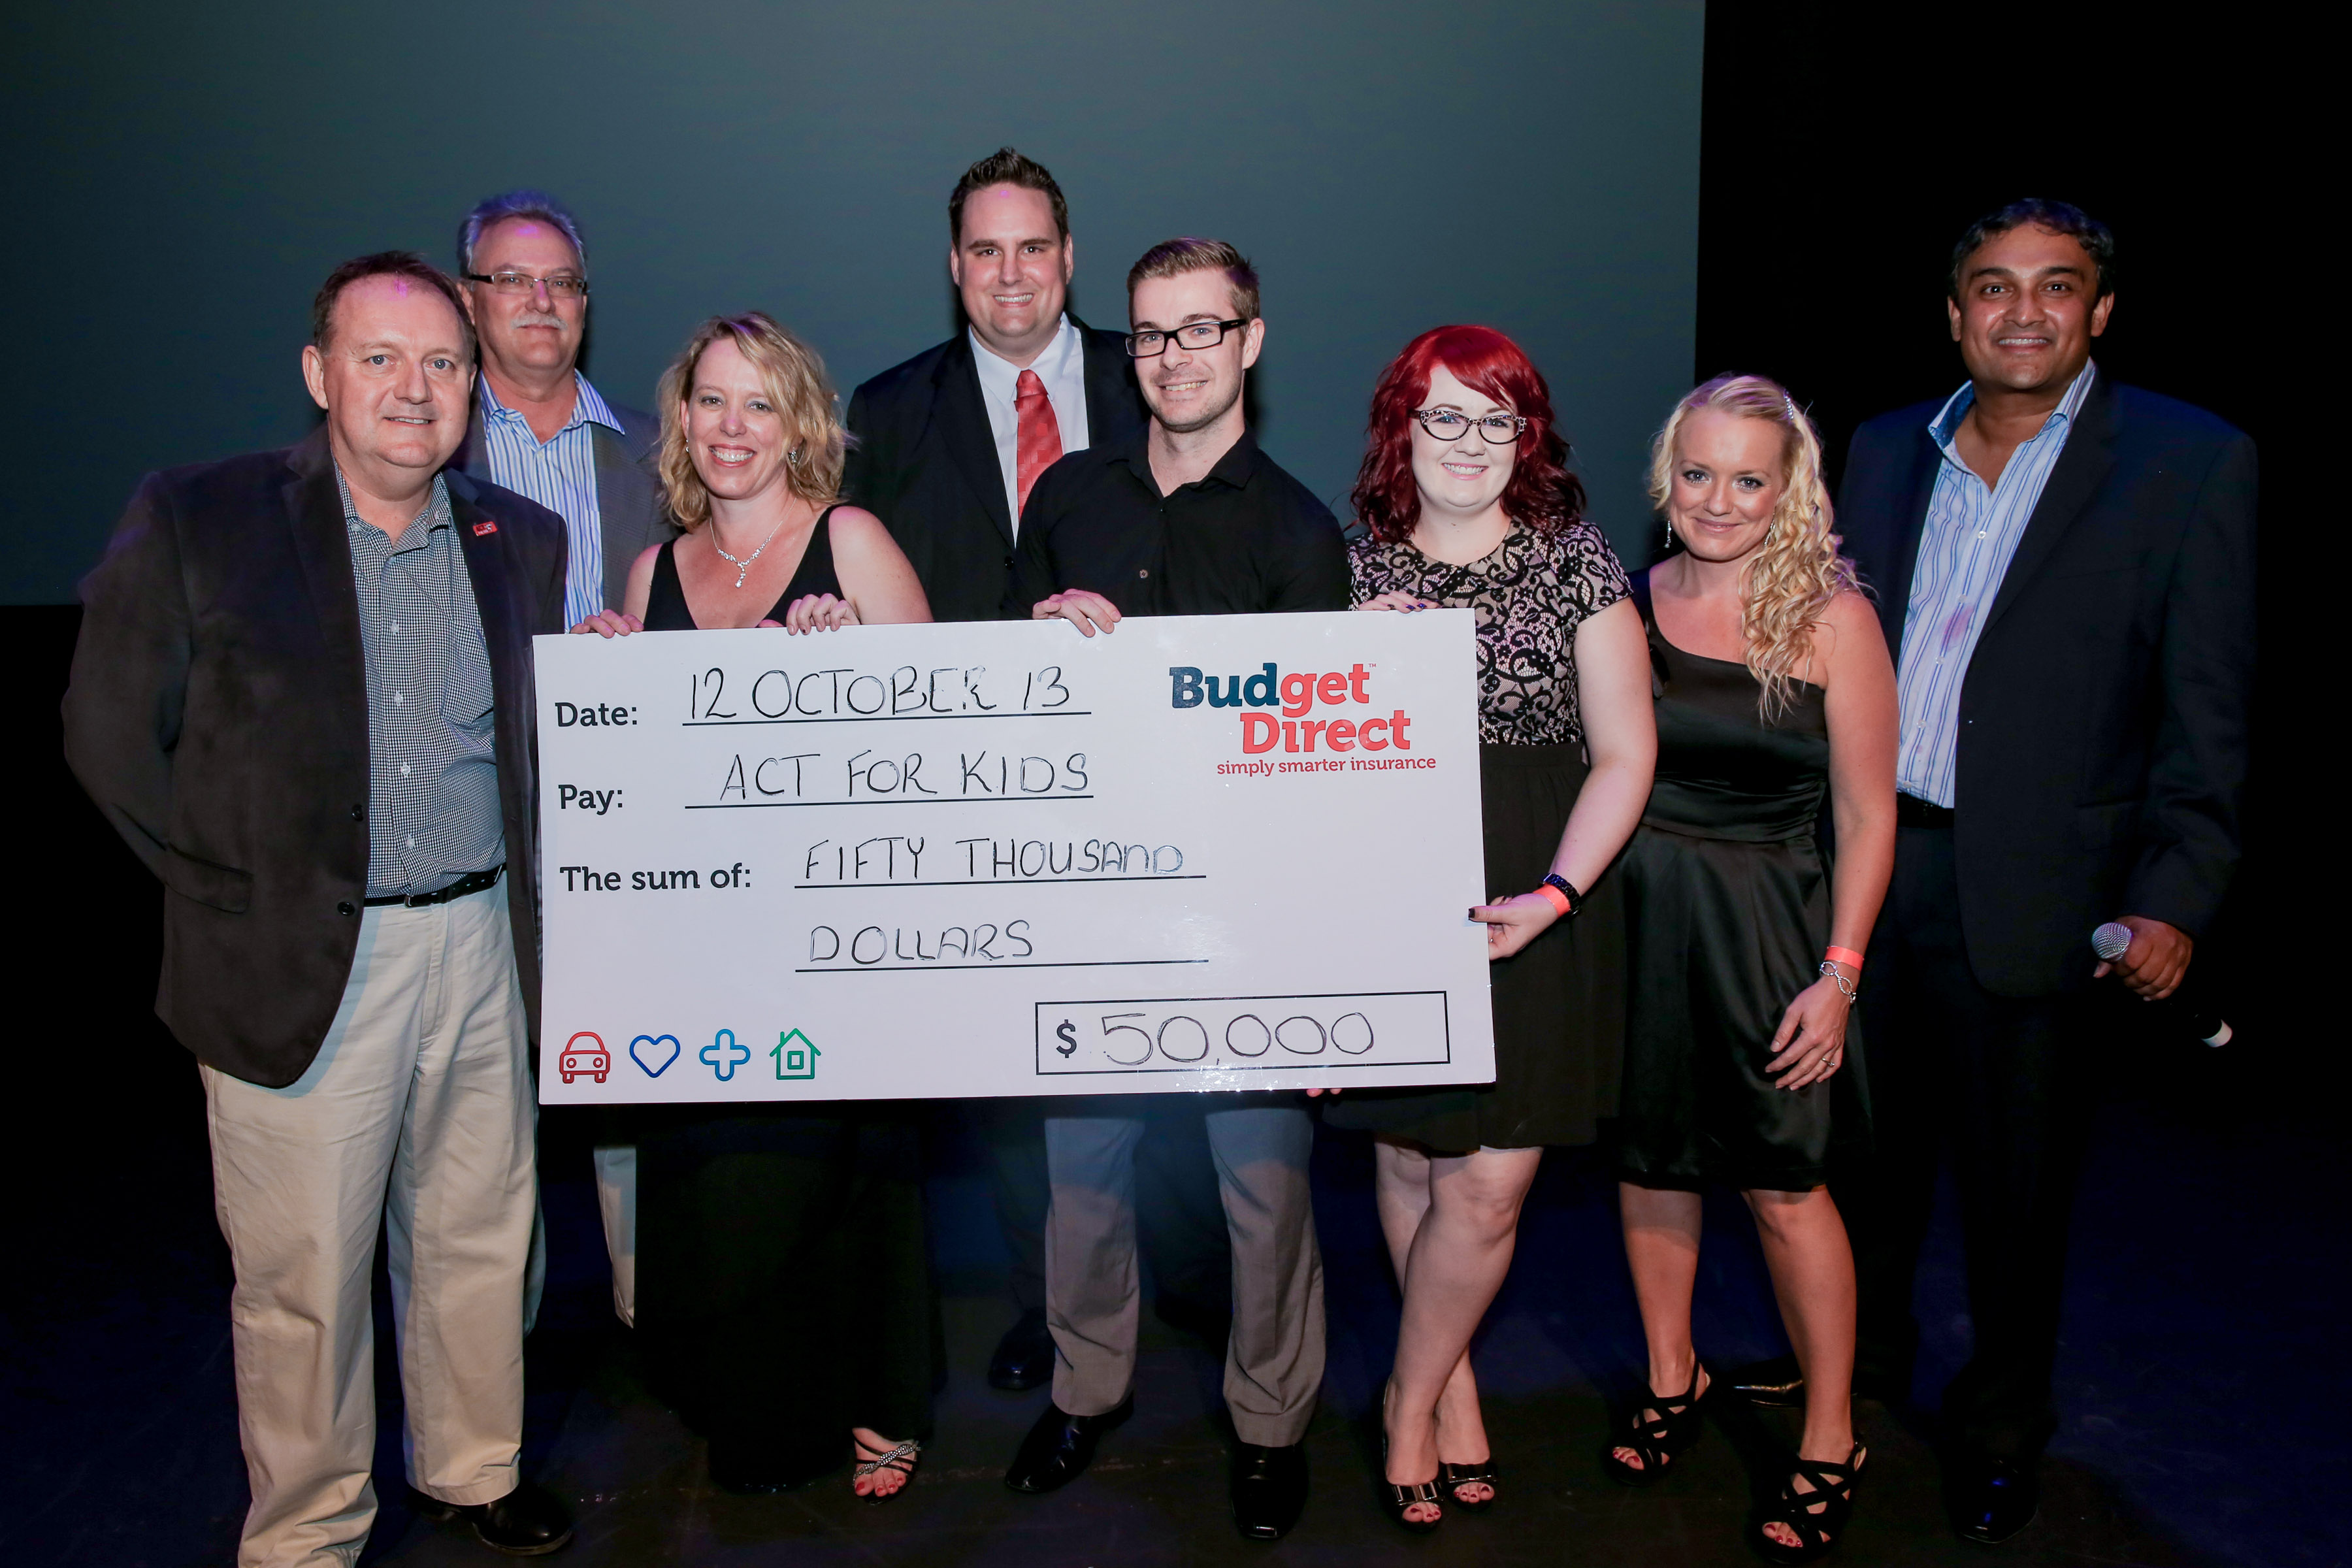 Act_for_Kids_cheque_from_Budget_Direct